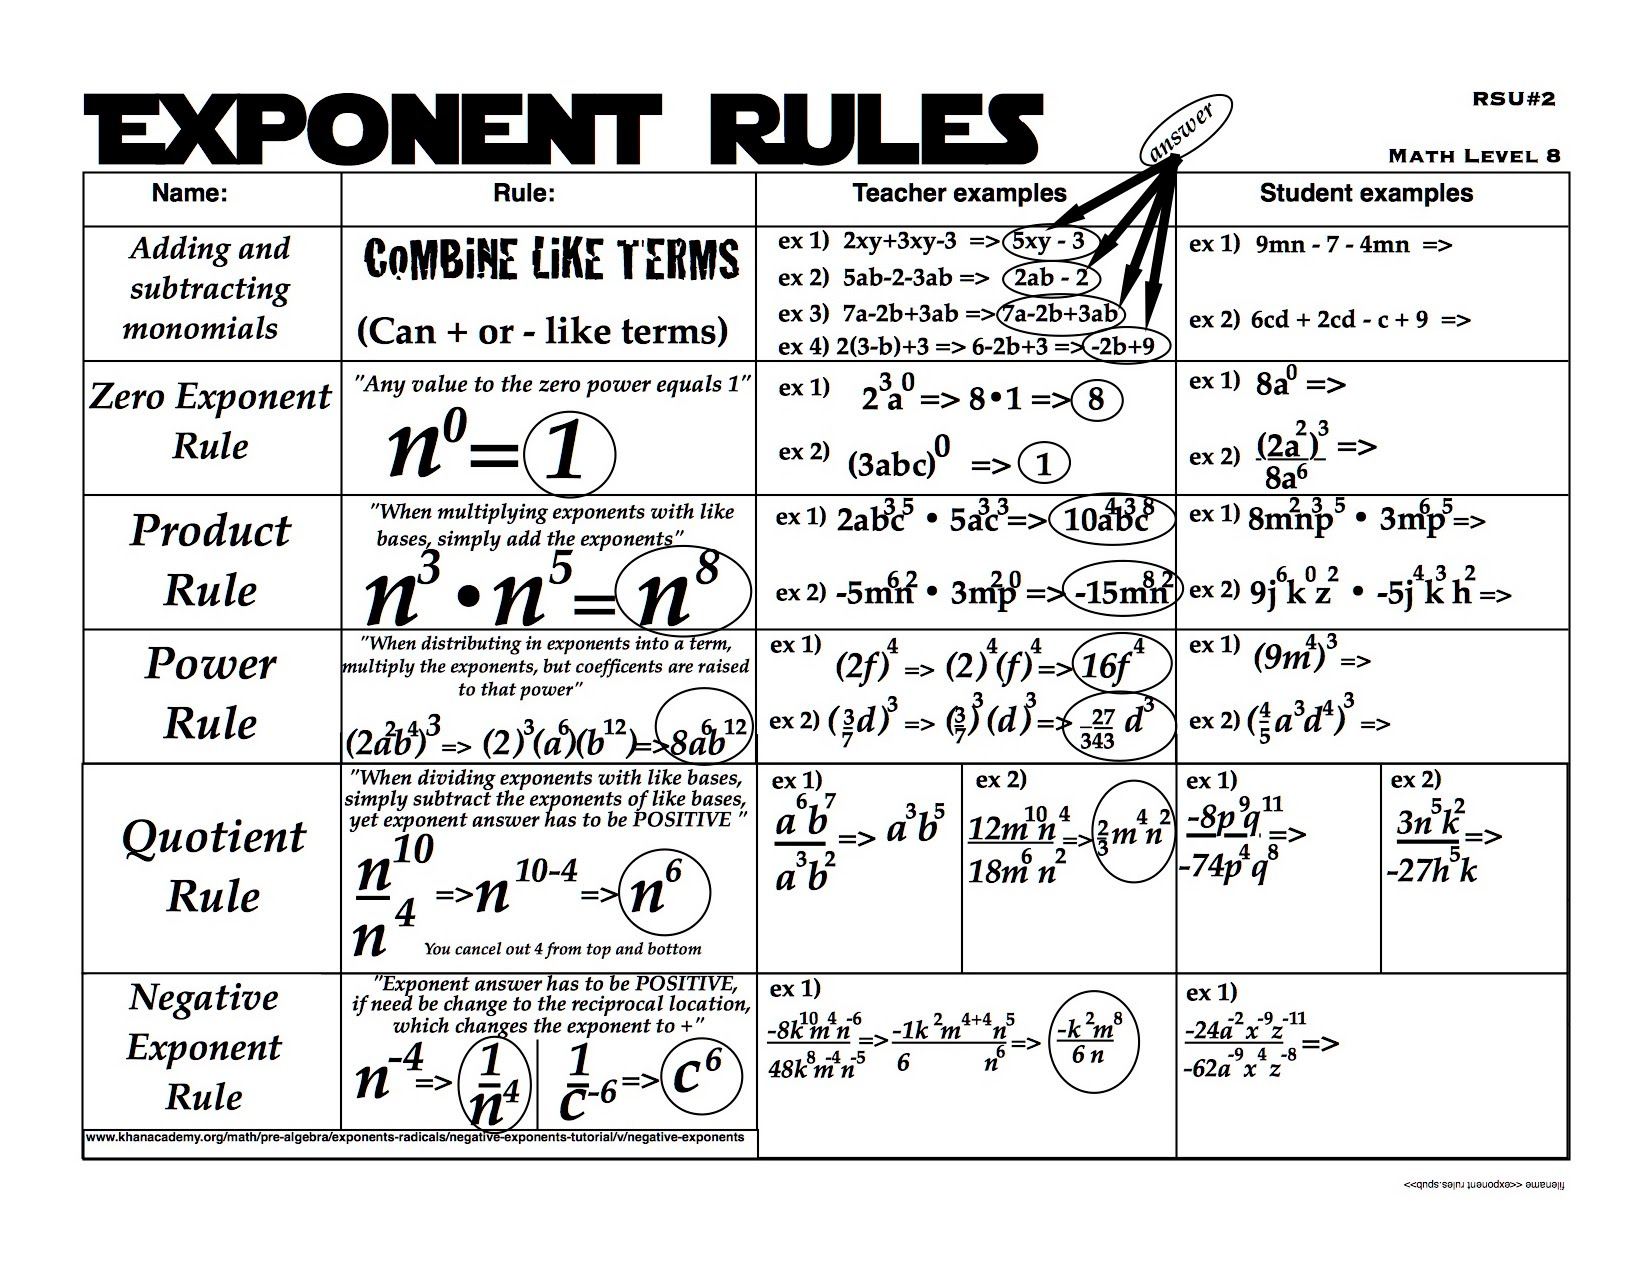 Study Guide Handout For Rules Of Exponents